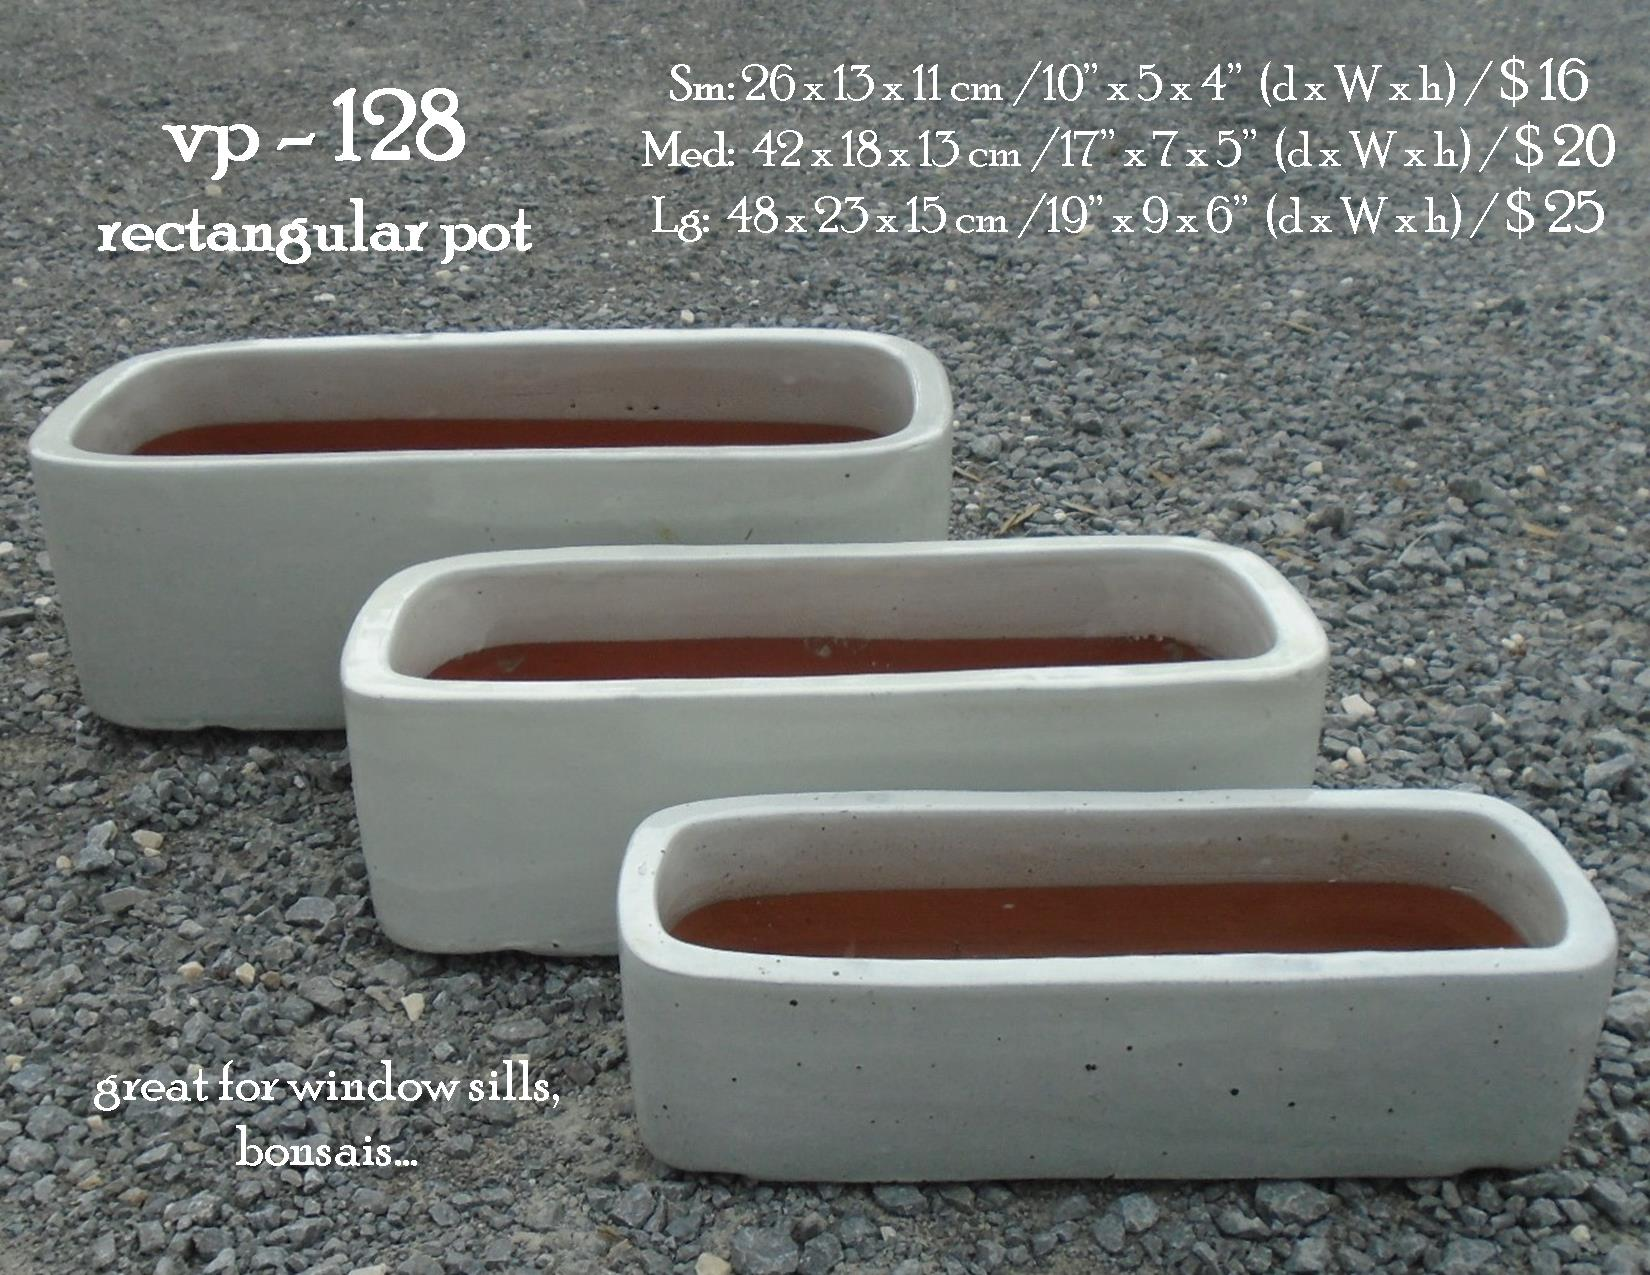 vp - 128 rectangular pot